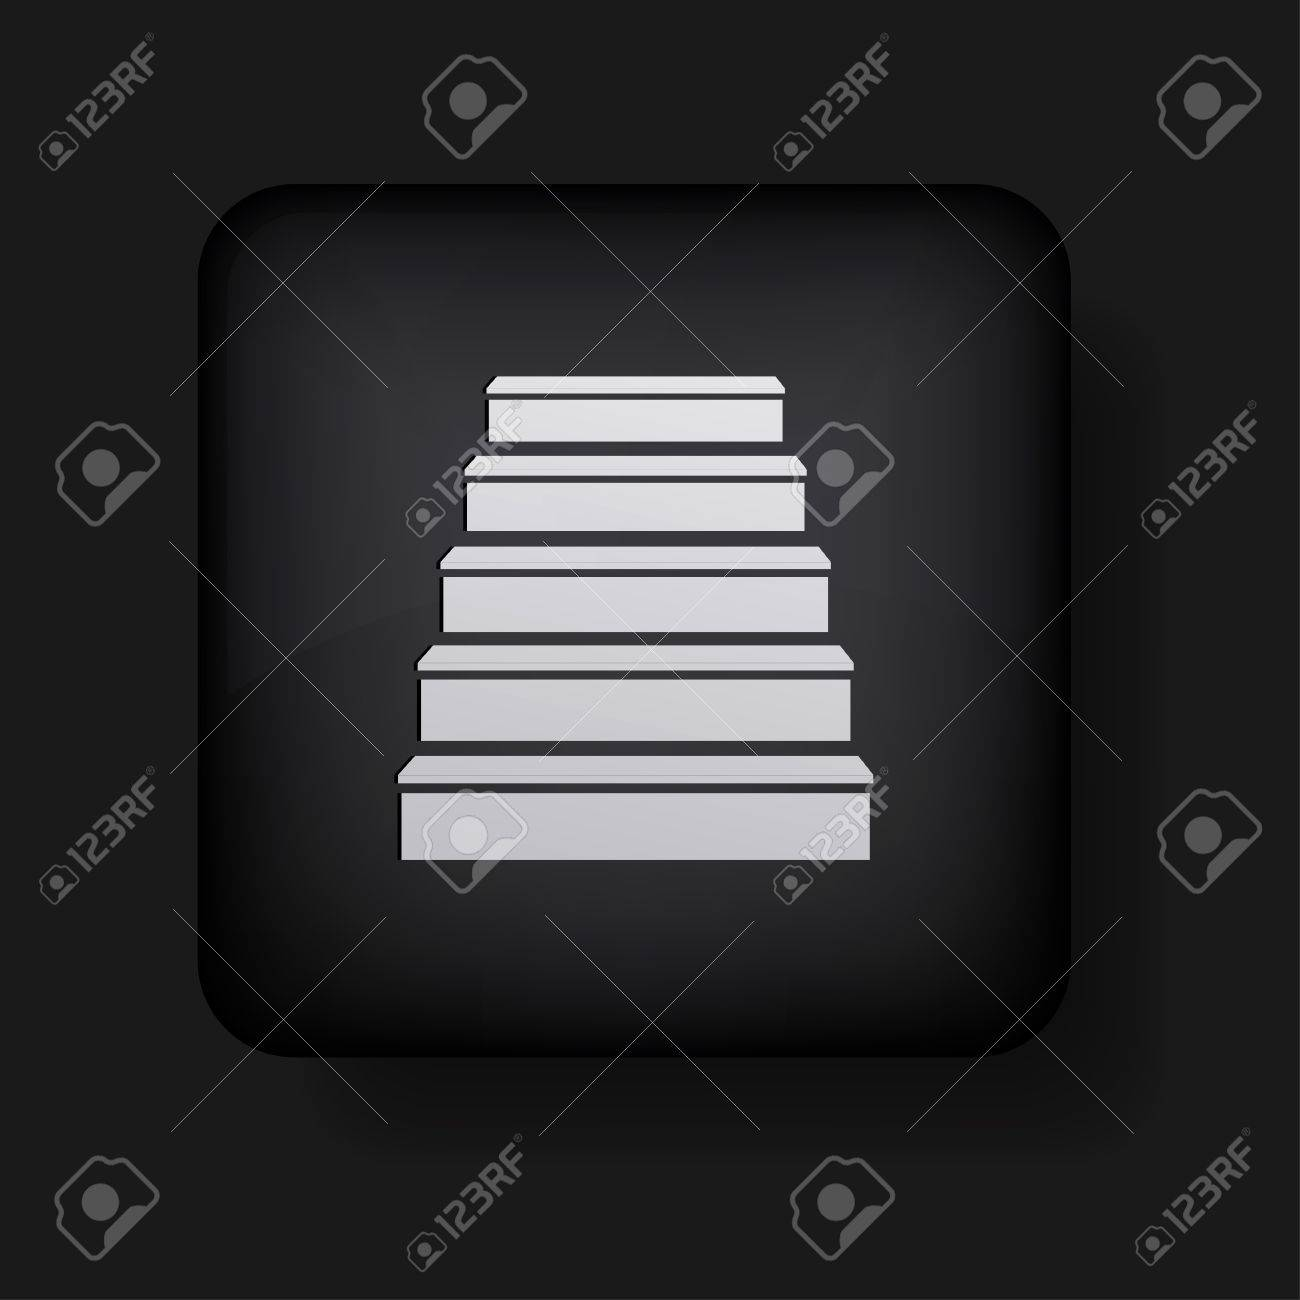 ladder icon on black. Stock Vector - 13698408